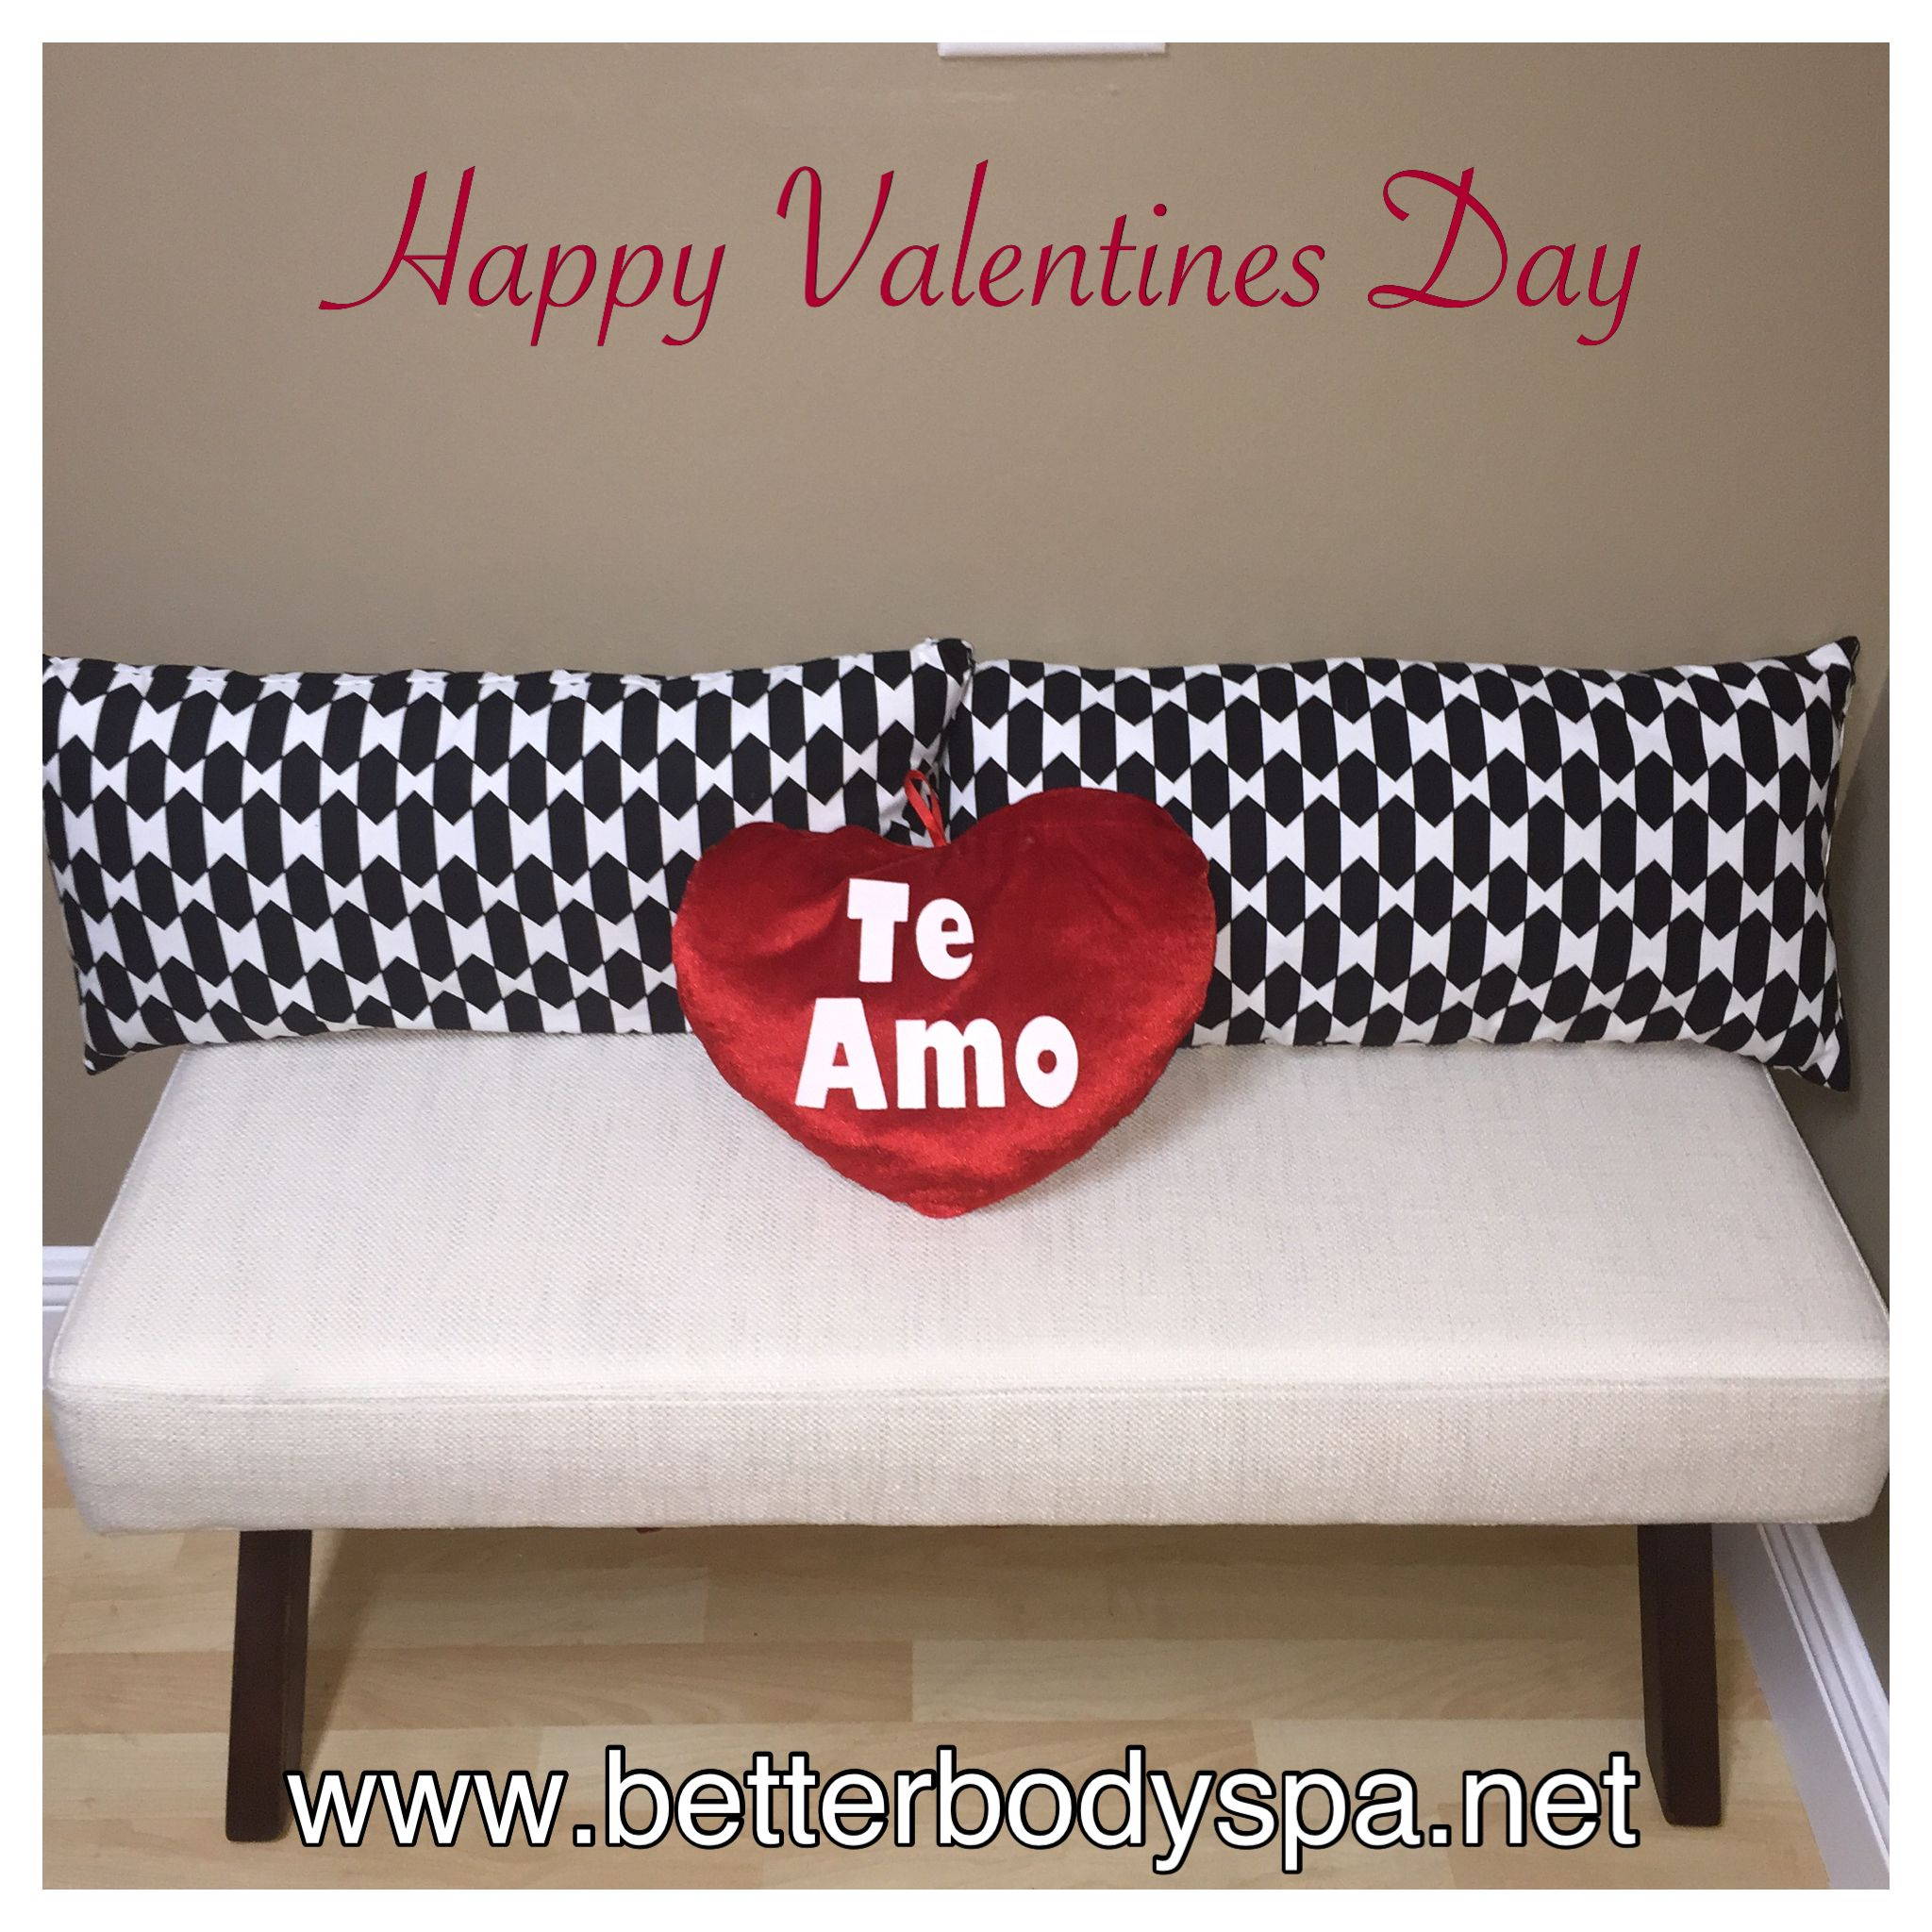 Happy Valentine's Day at Better Body Spa in Fort ...